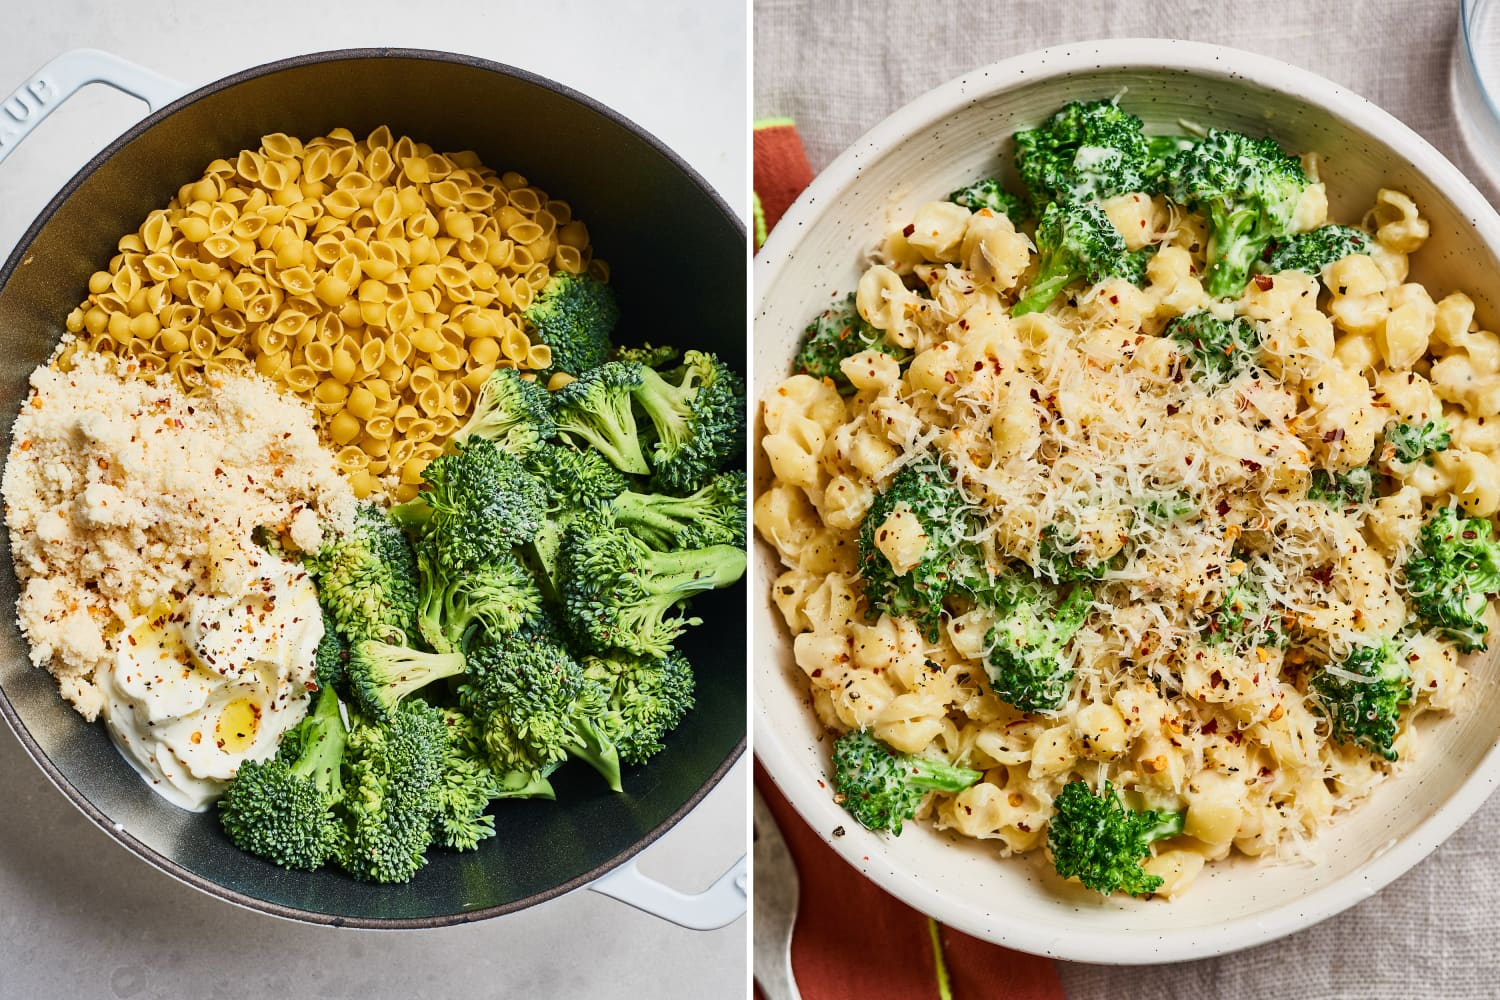 Recipe: One-Pot Creamy Broccoli Pasta